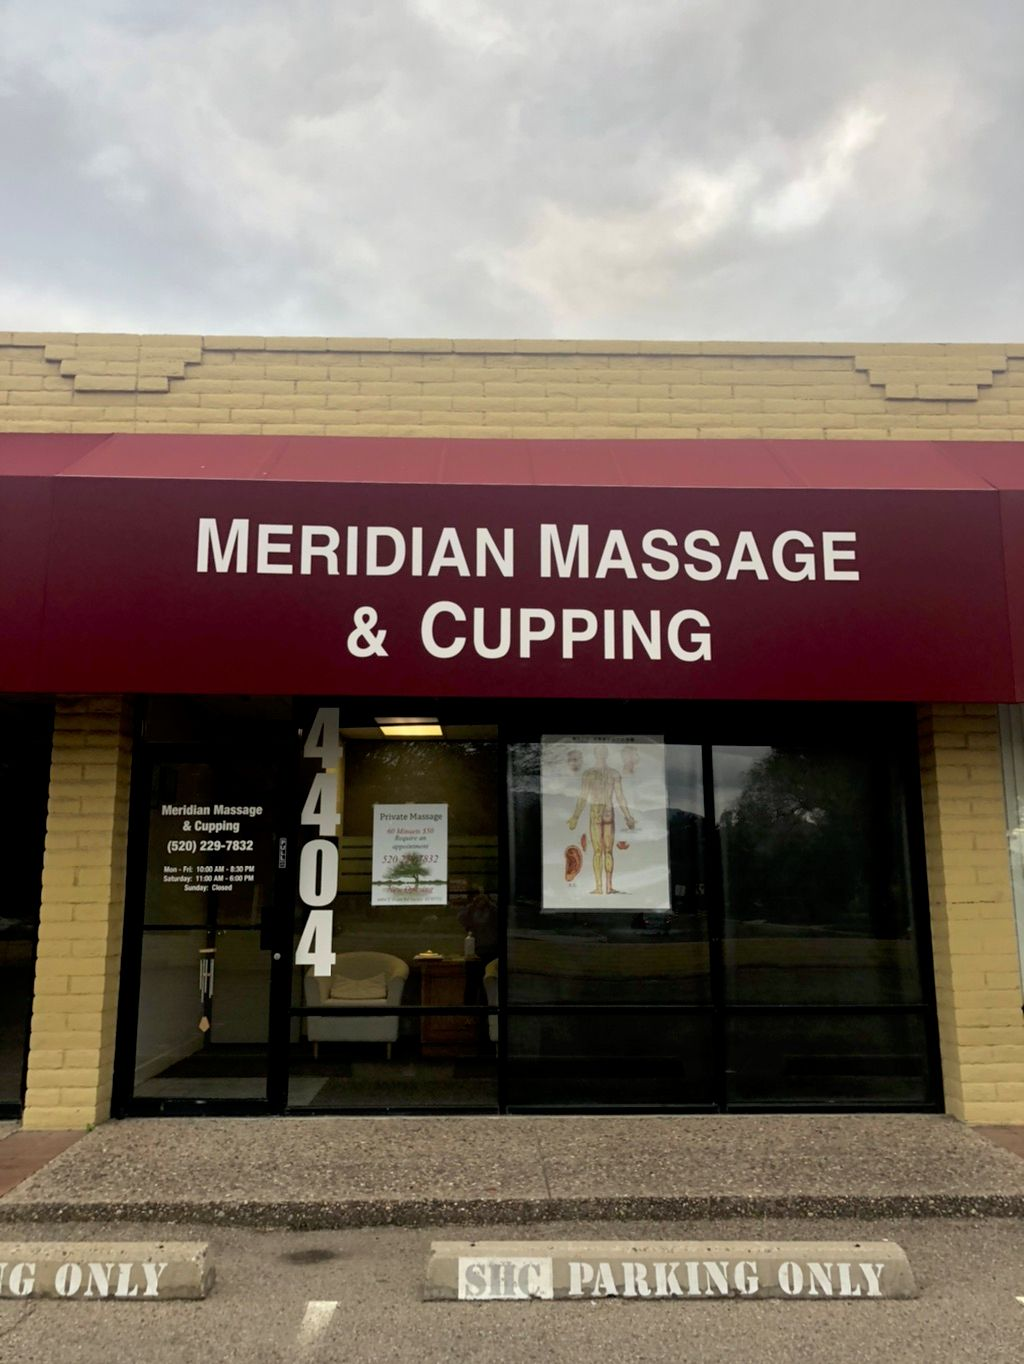 Meridian massage &Cupping